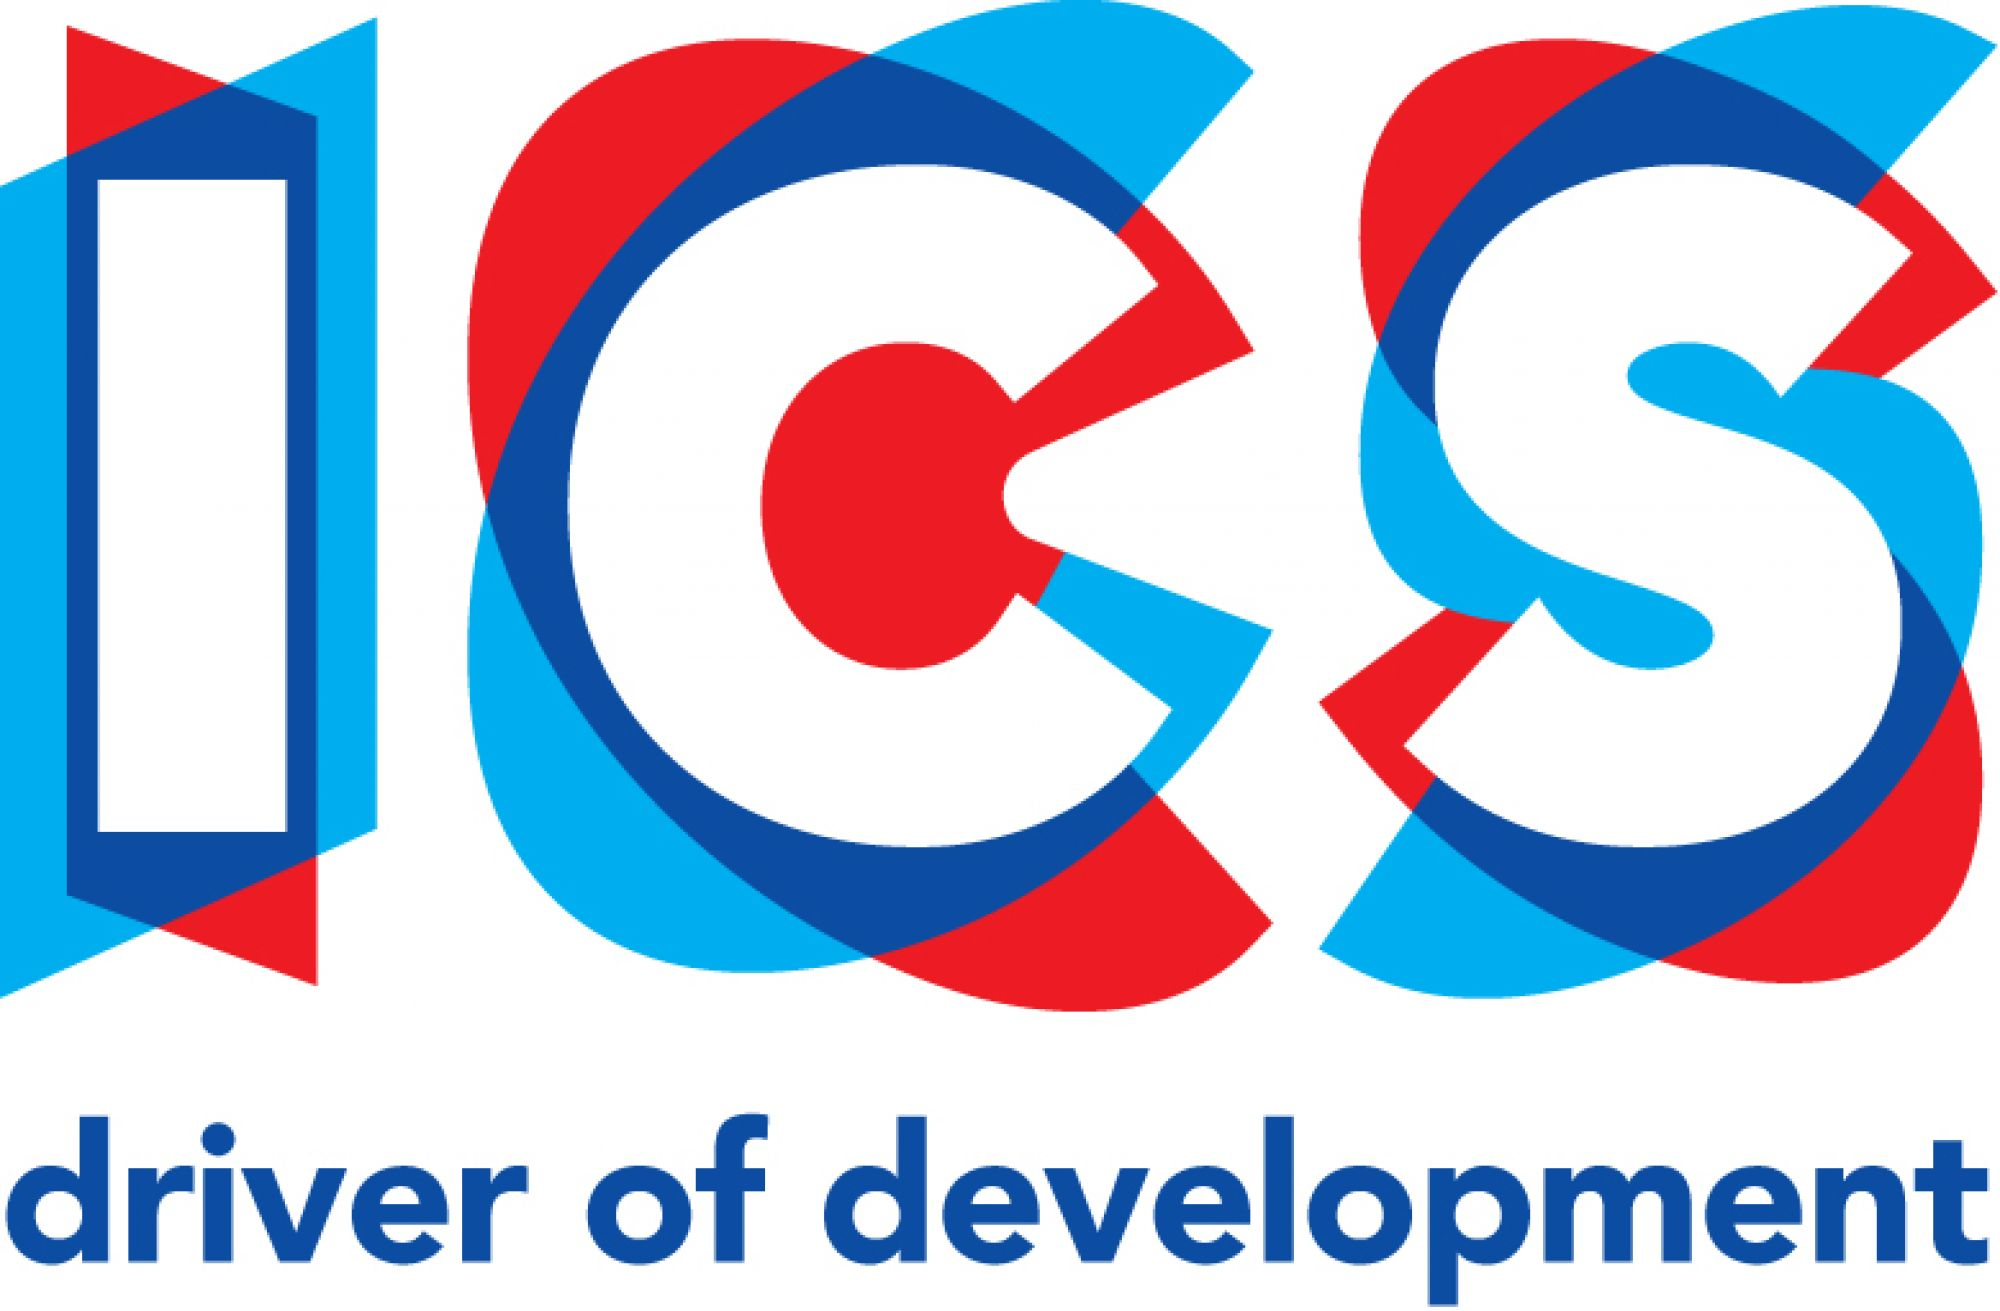 ICS%20Driver%20of%20Development%20logo.jpg